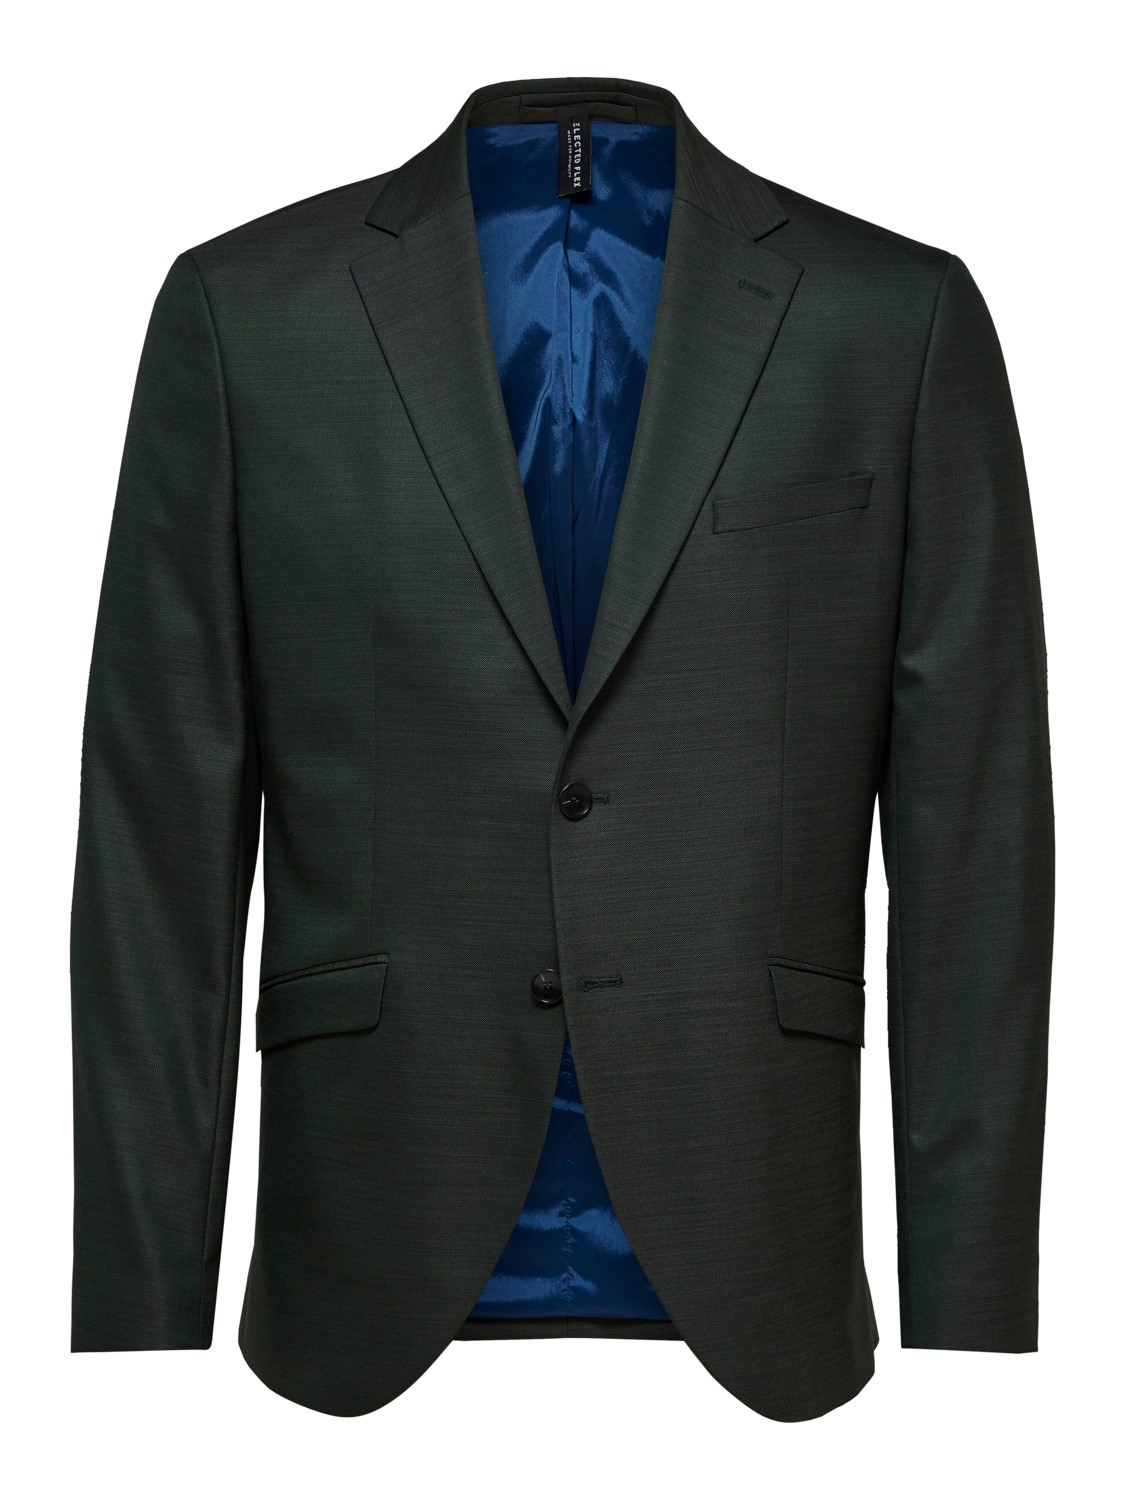 Selected Blazer - Mylostate flex GREEN | Gate36 Hobro